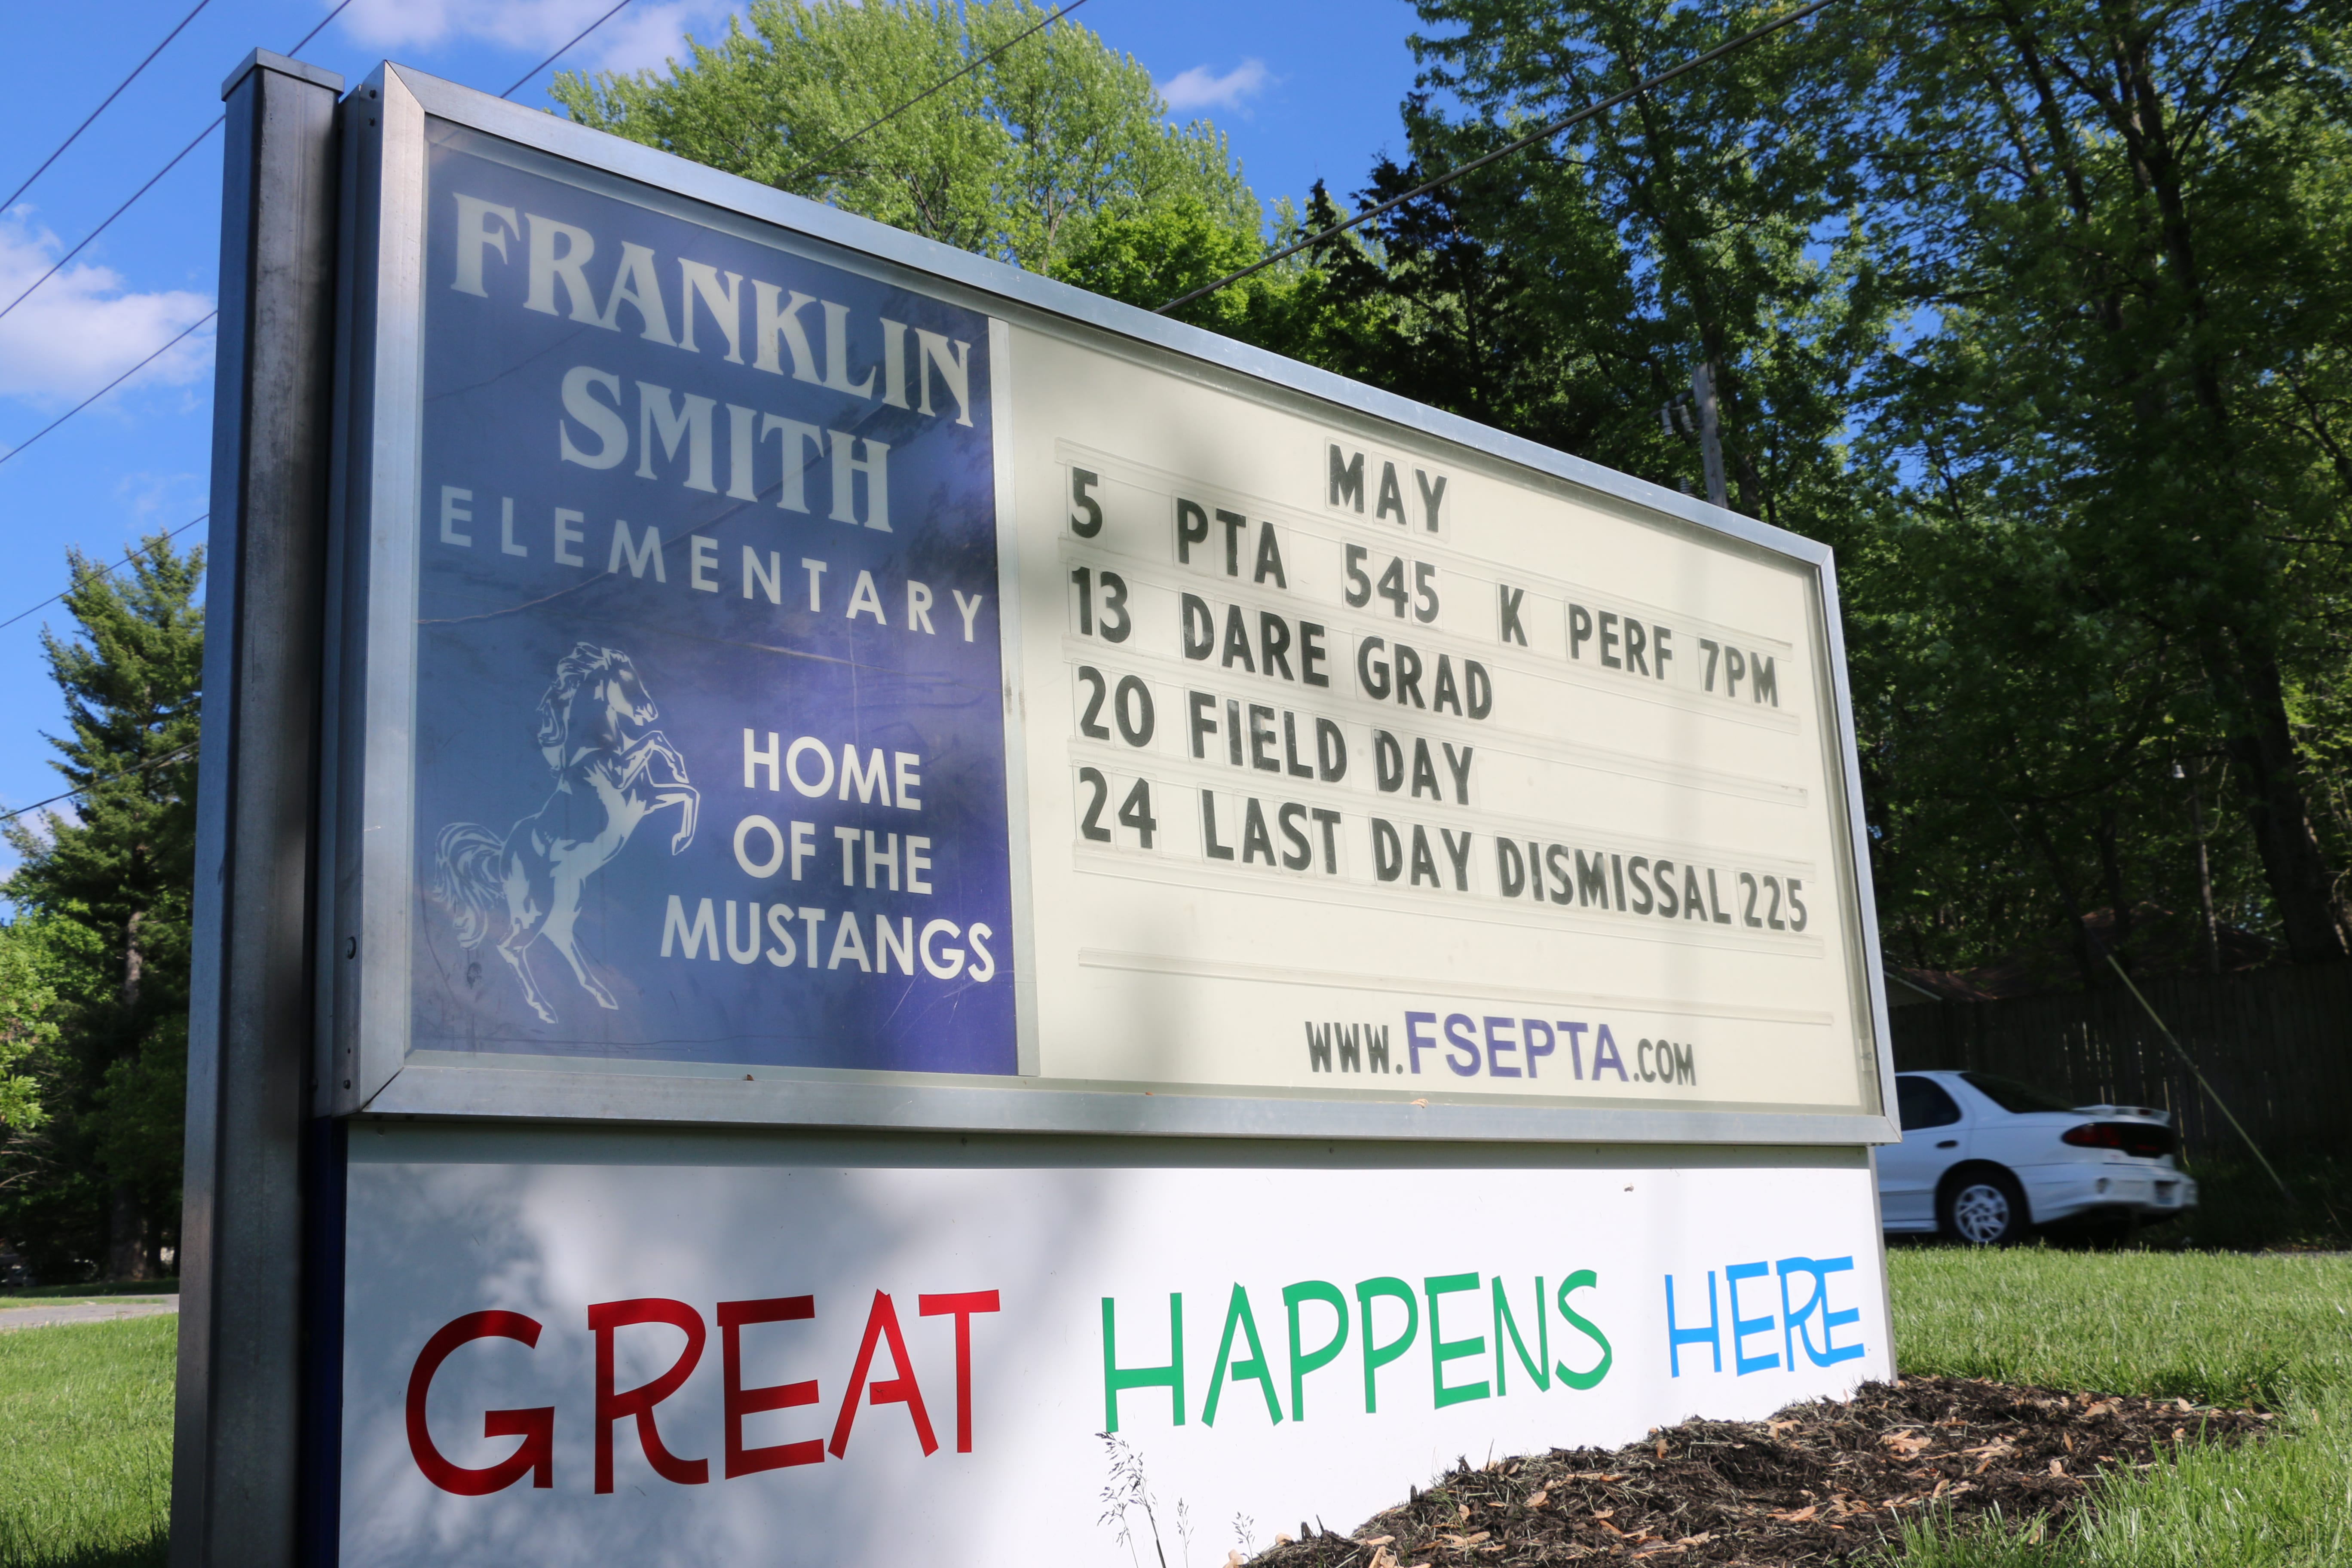 Franklin Smith school sign